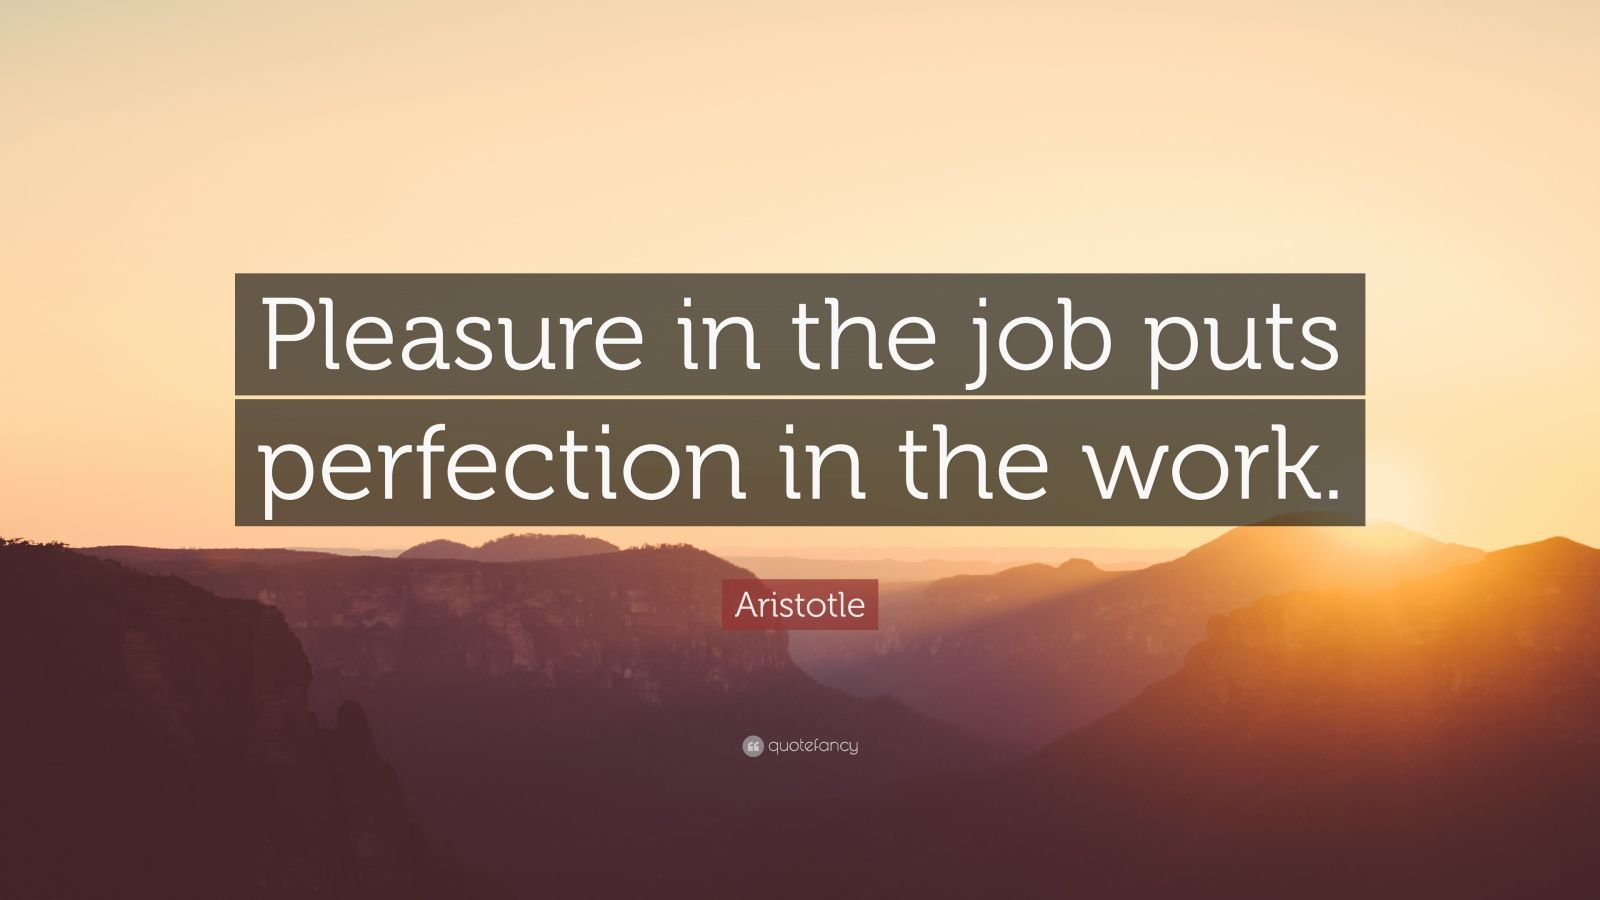 Persistence Quotes Wallpapers Aristotle Quote Pleasure In The Job Puts Perfection In